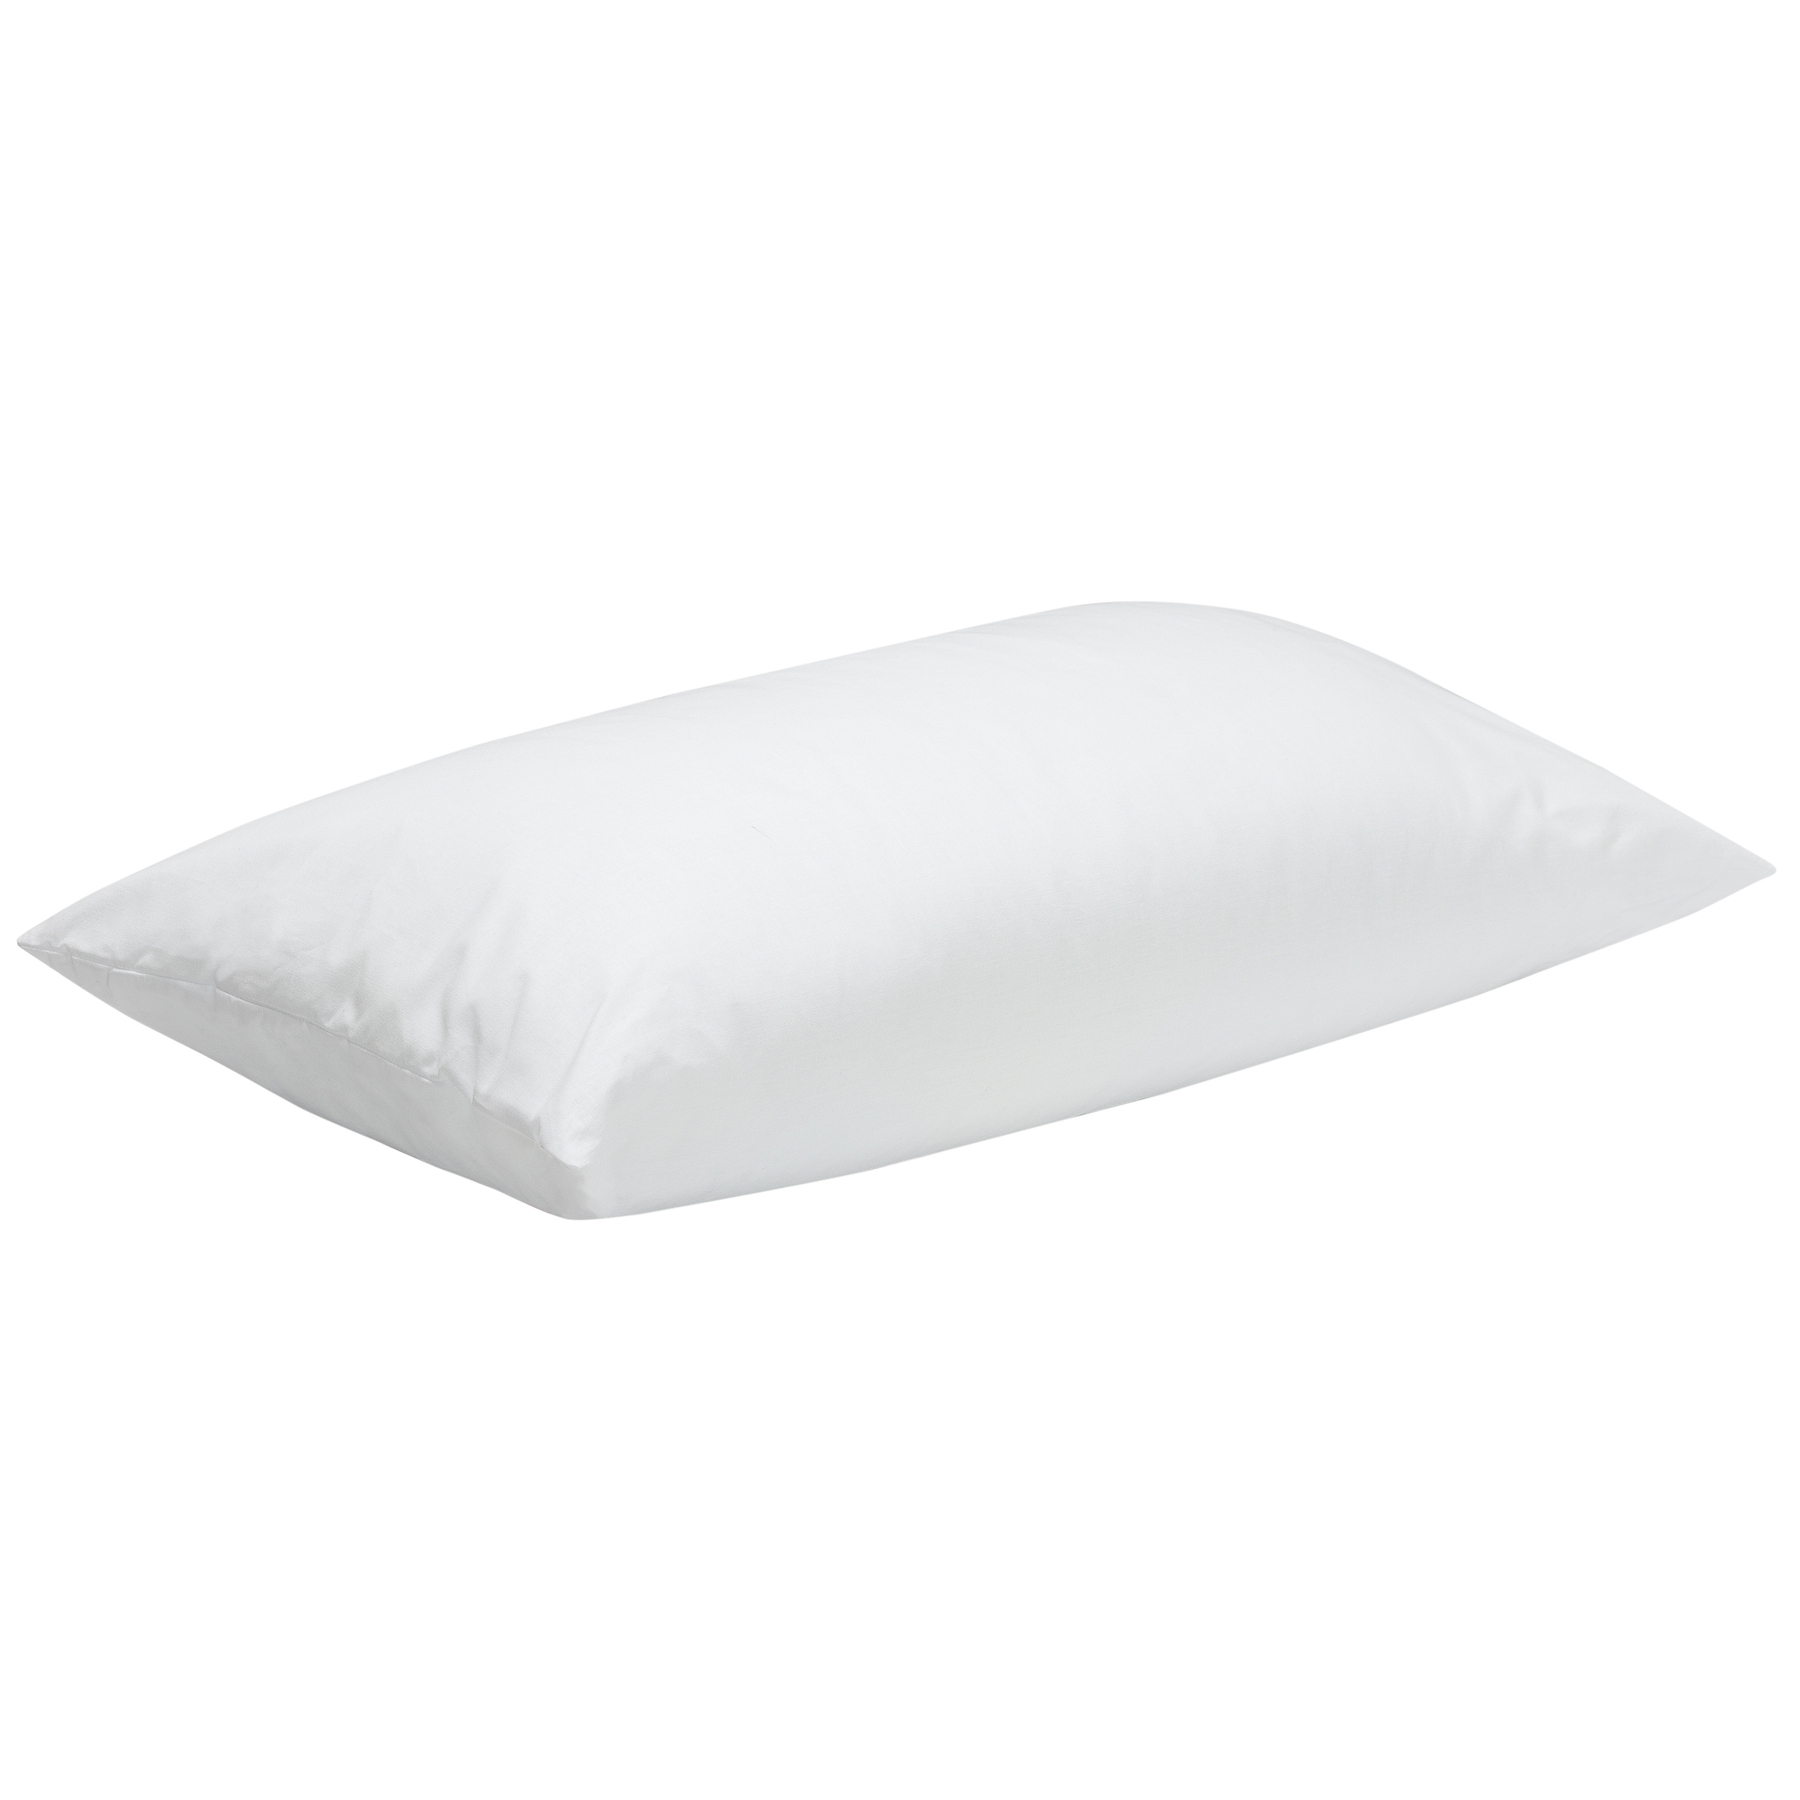 Cheapestmattresses.com Home-fiber Pillow With Case Dust Mite Protection.